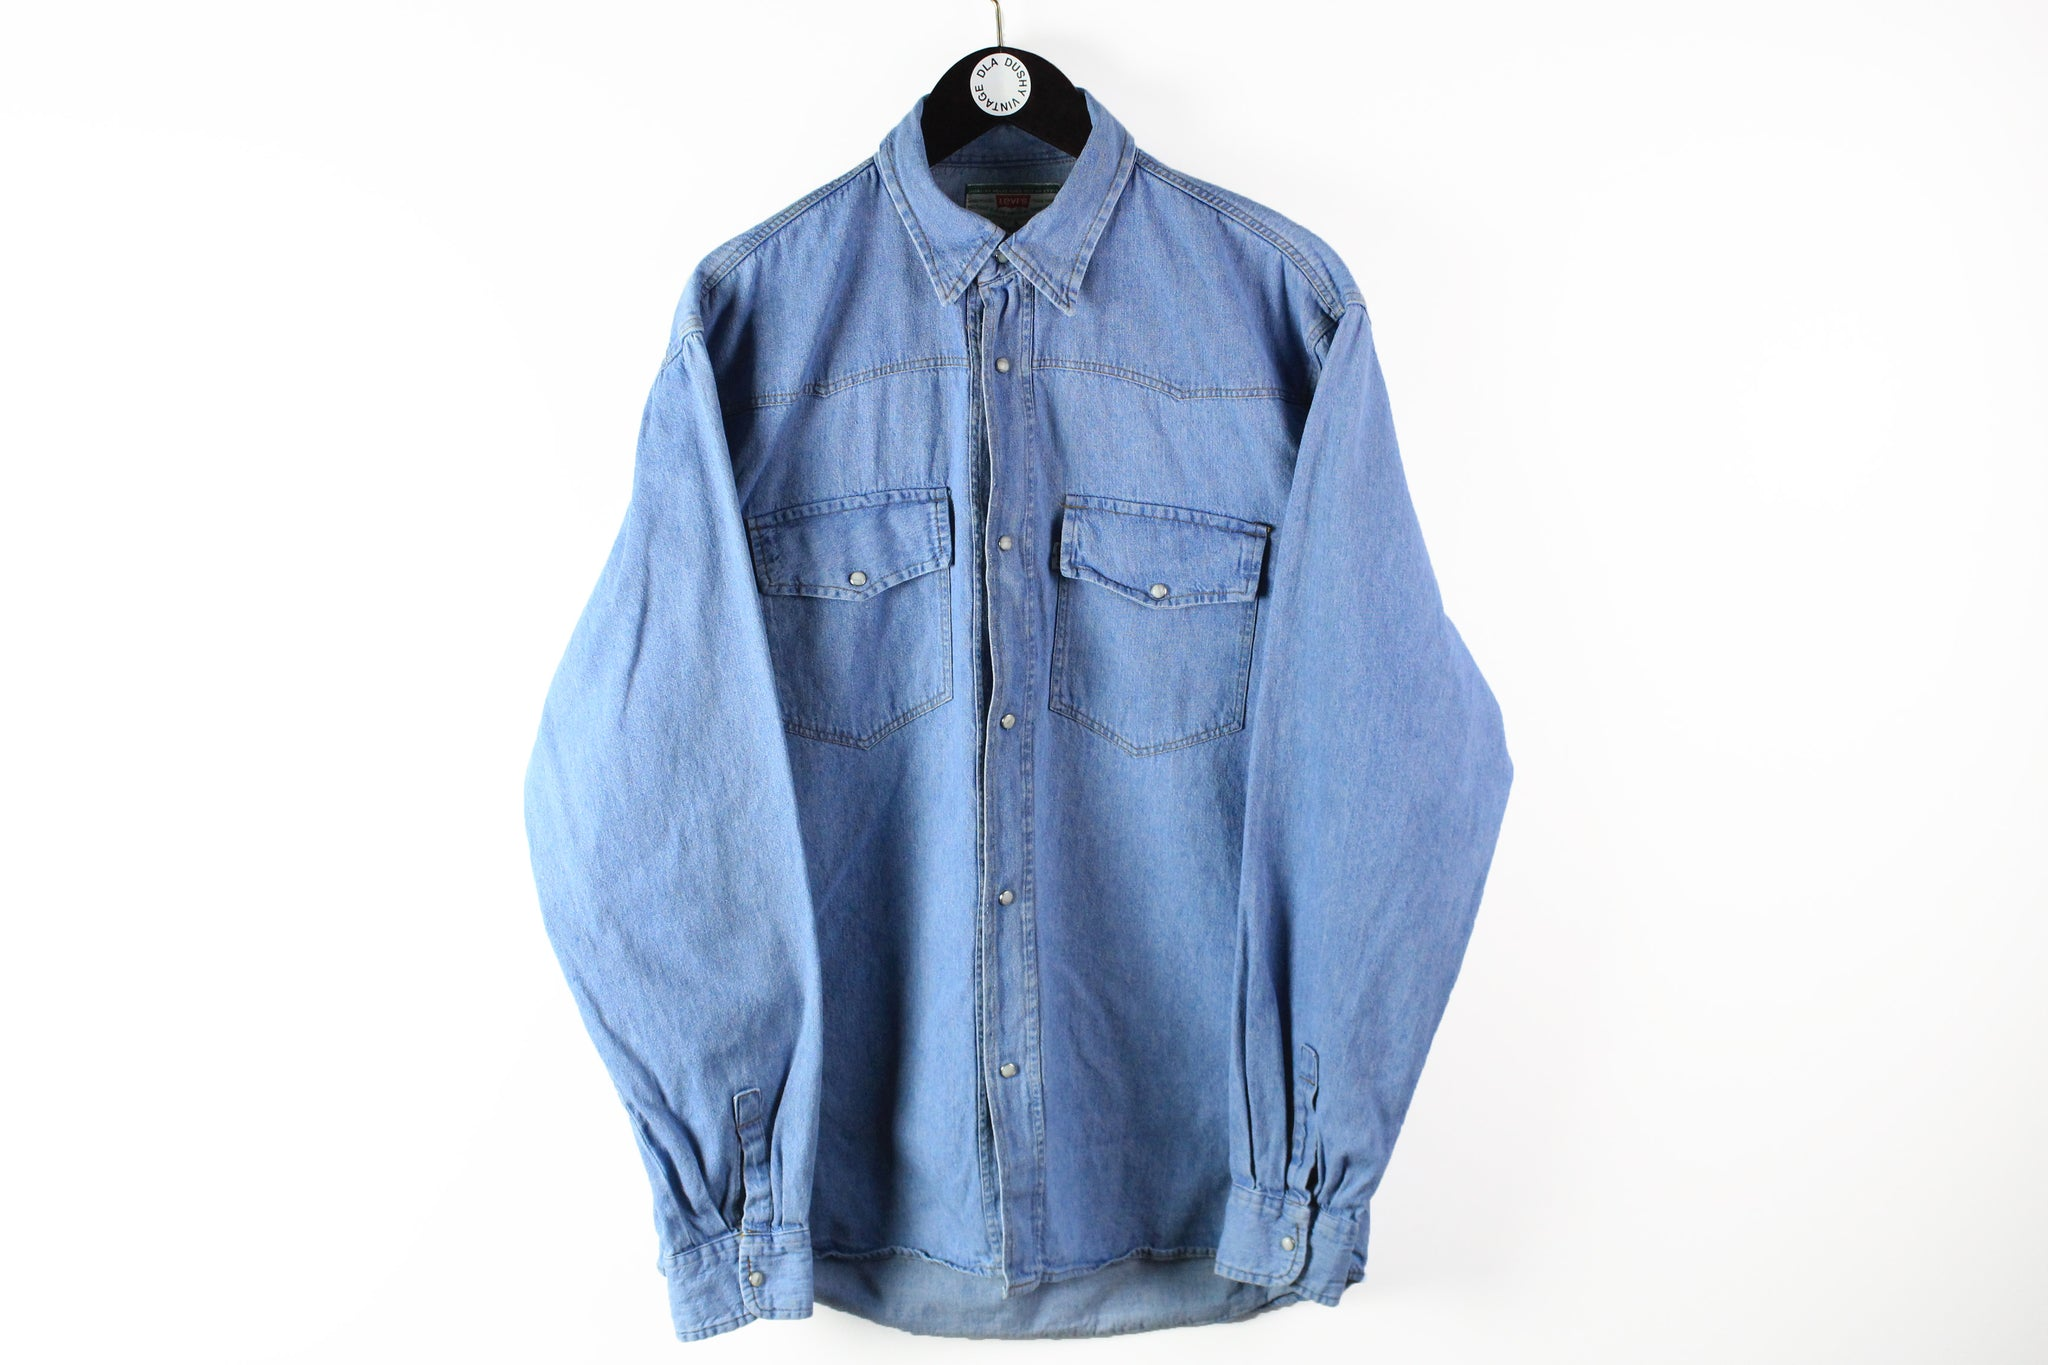 Vintage Levis Denim Shirt XLarge blue snap button 90s classic work wear